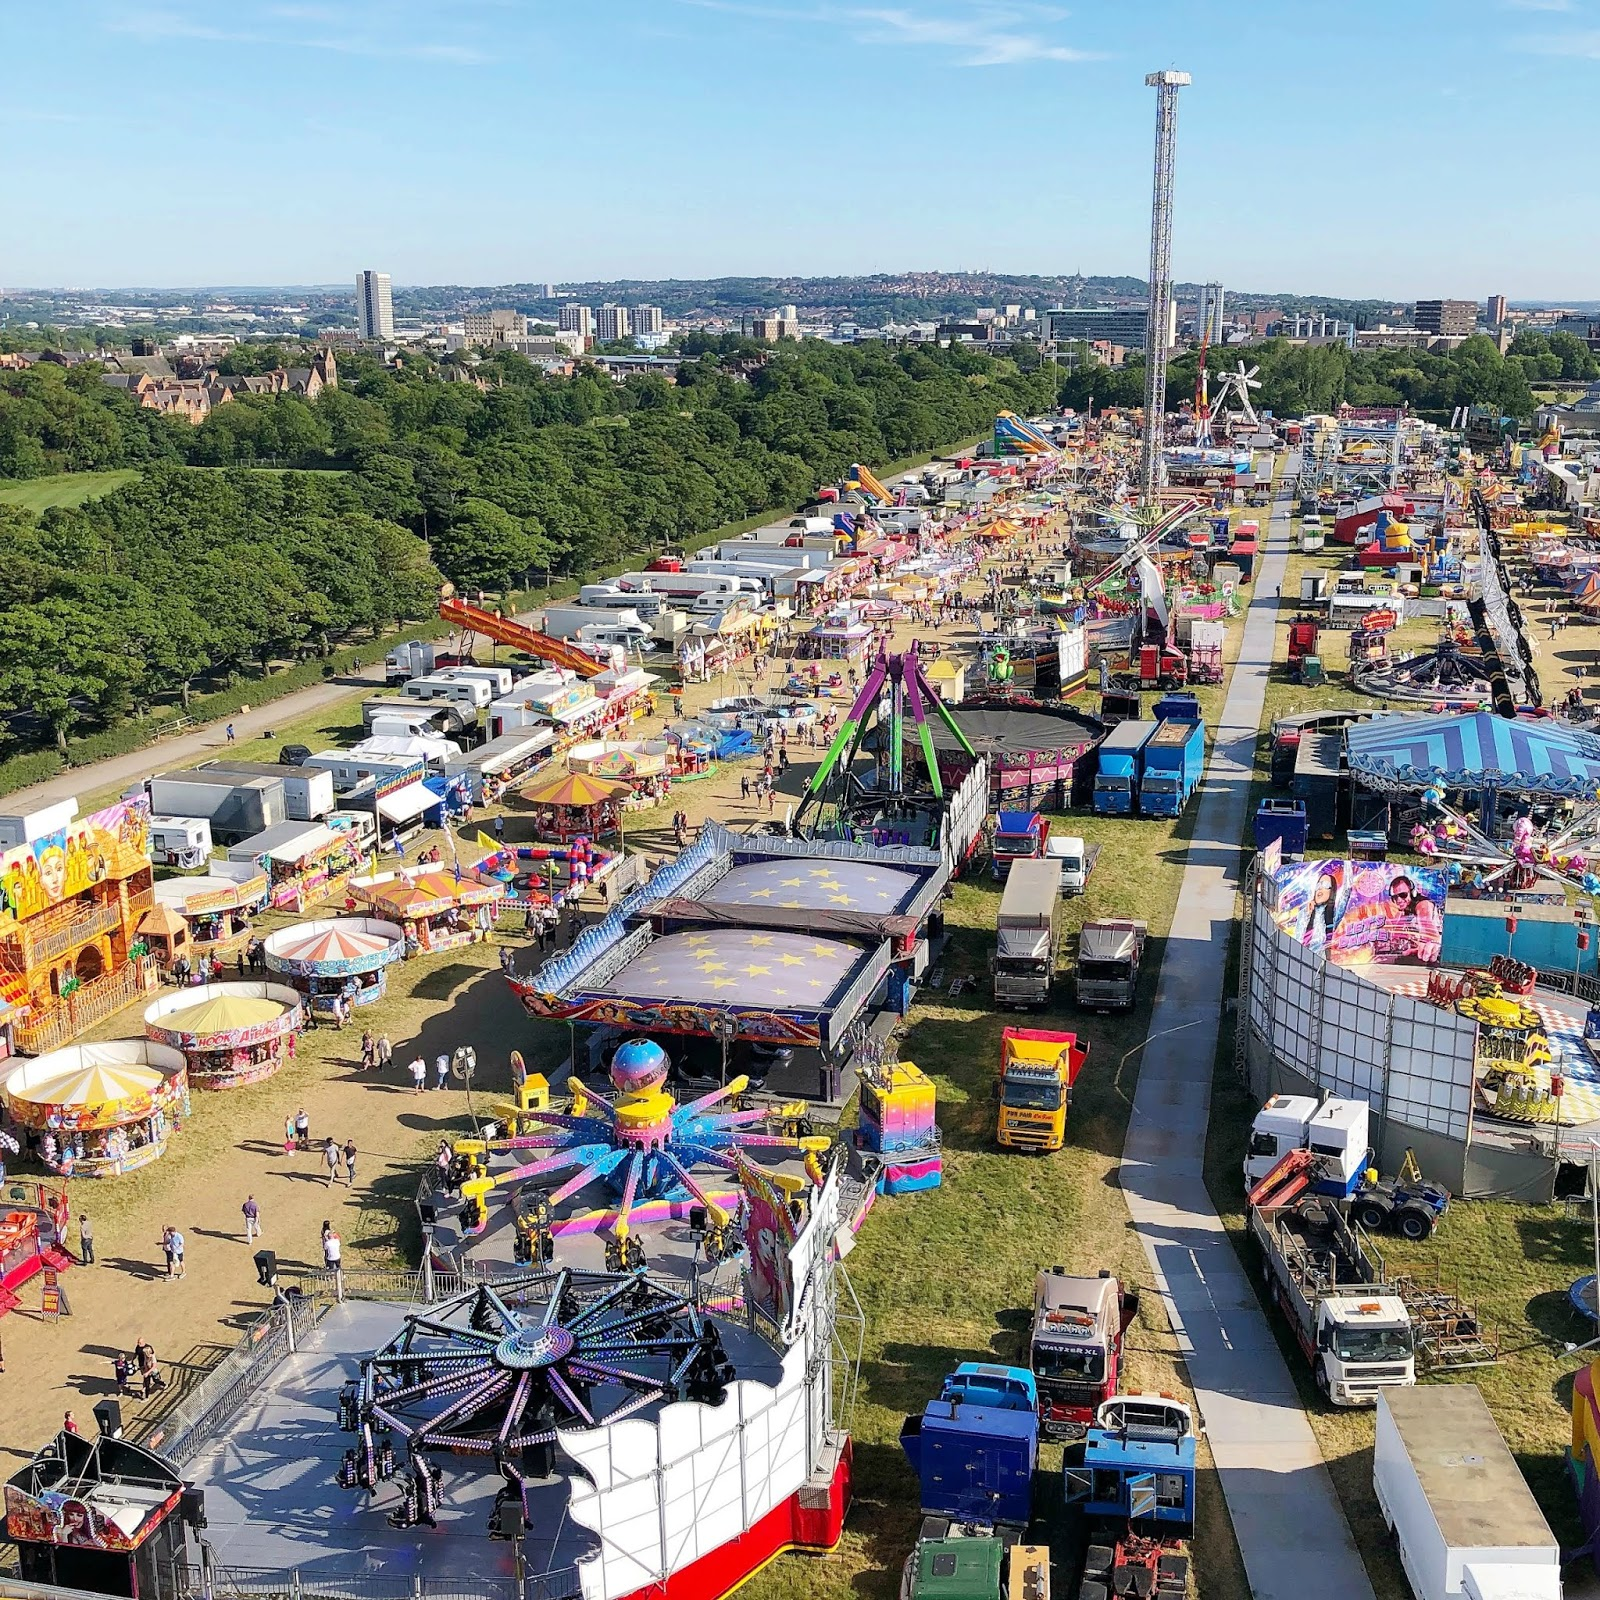 My June Days - The Hoppings